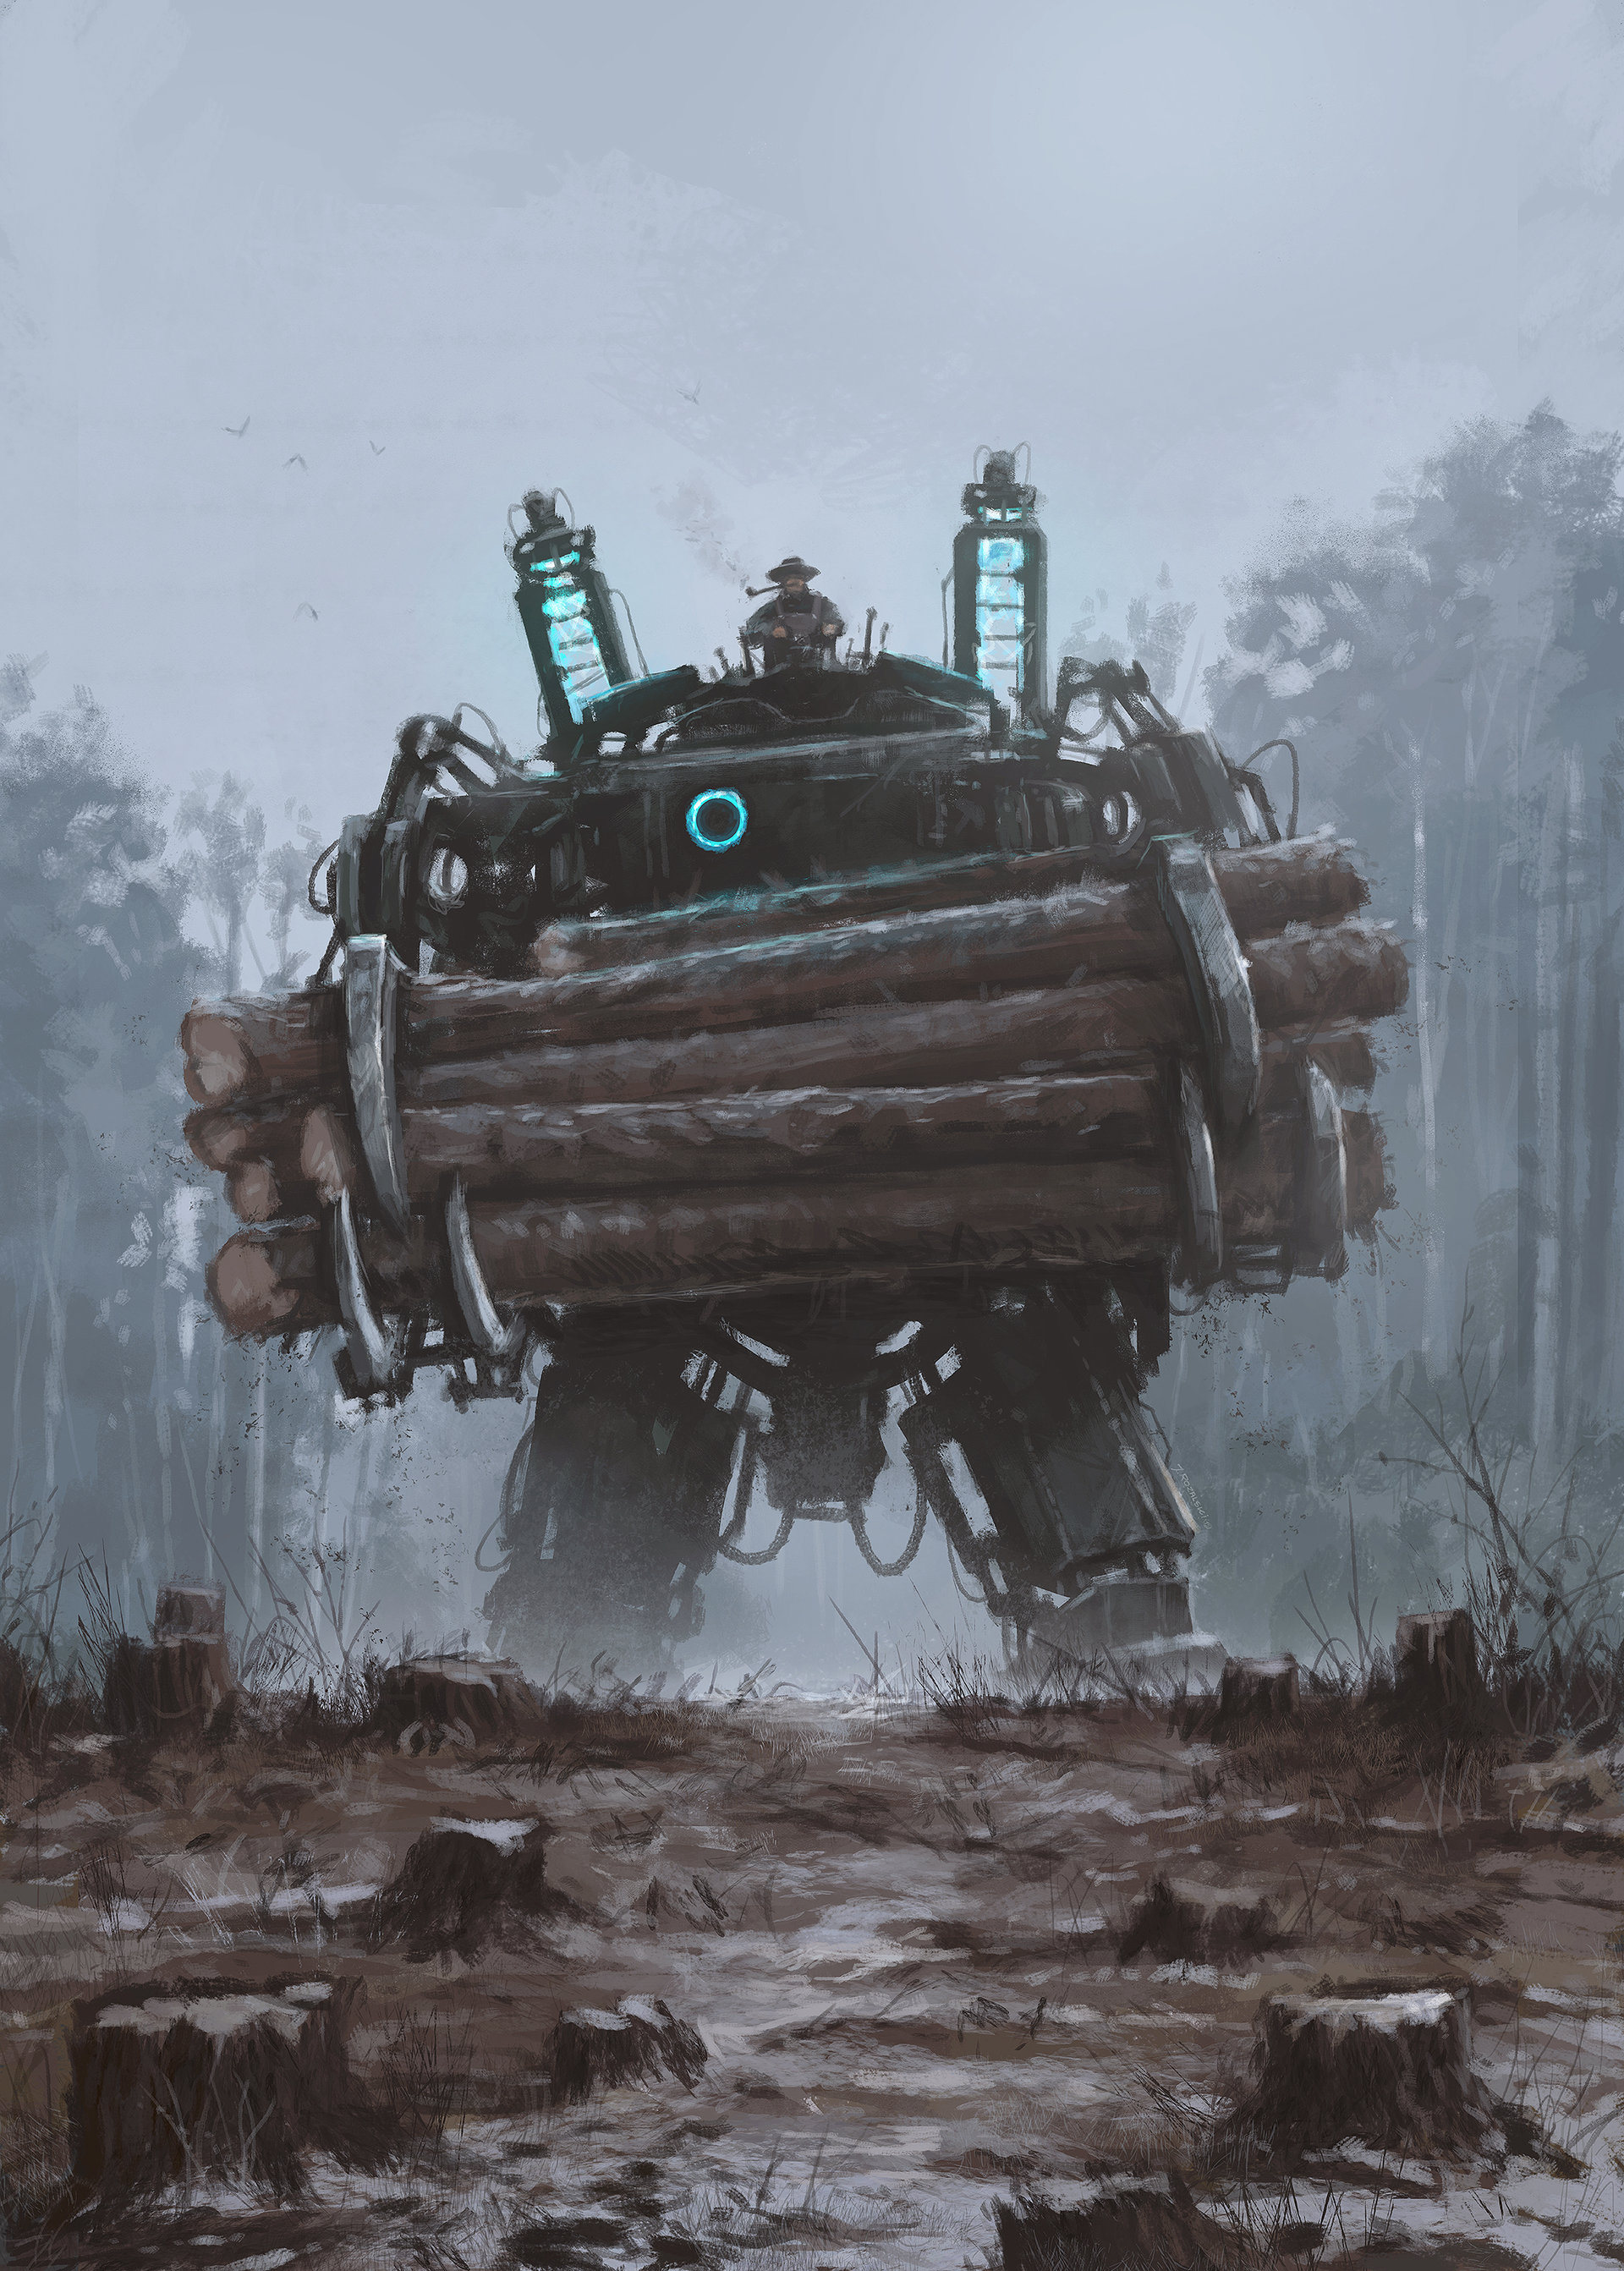 jakub-rozalski-factory-illustration-03-wwoodcaterls